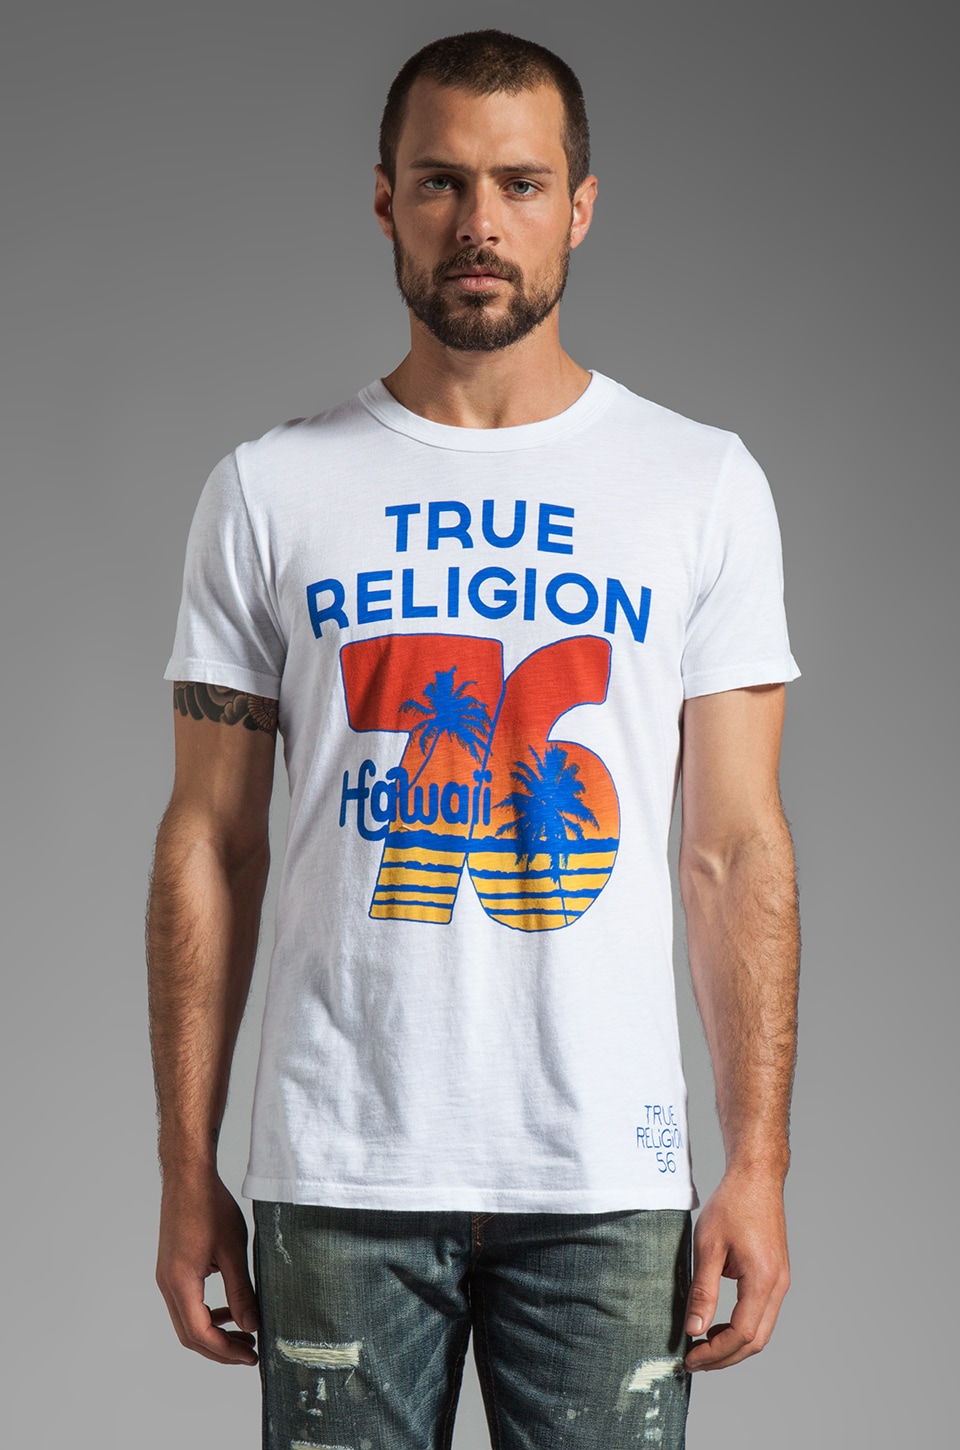 True Religion Hawaii Graphic Tee in White